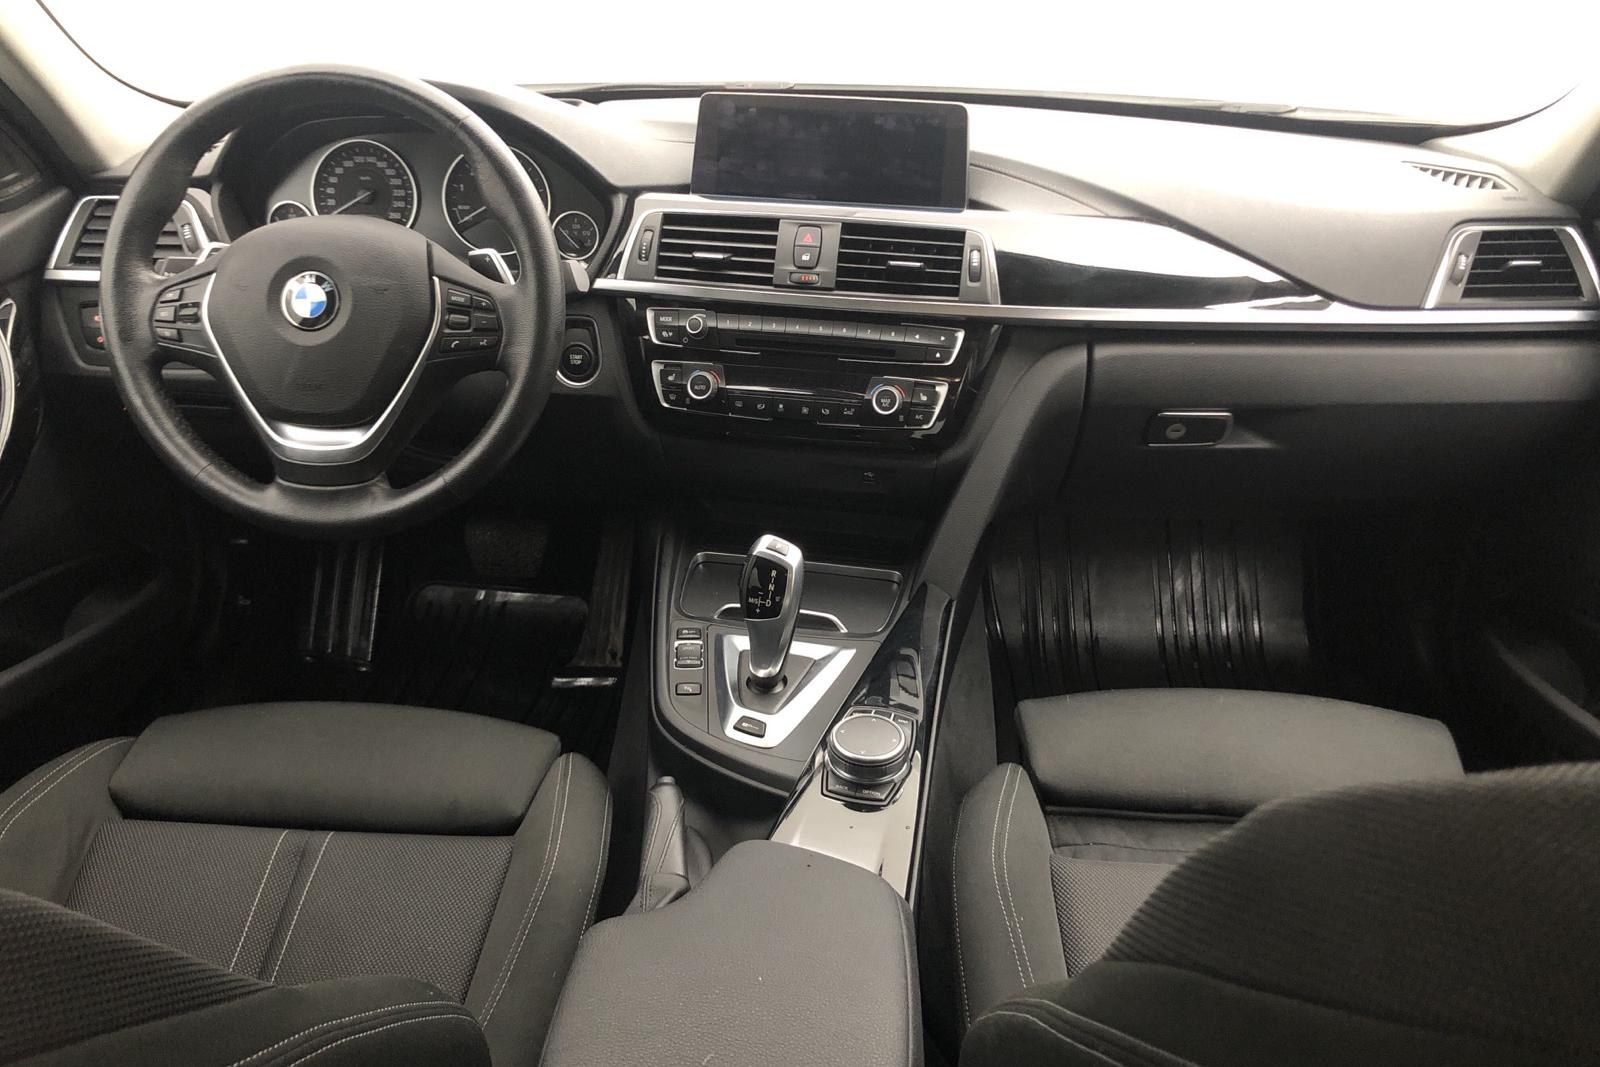 BMW 330e Sedan, F30 (252hk) - 70 686 km - Automatic - white - 2018